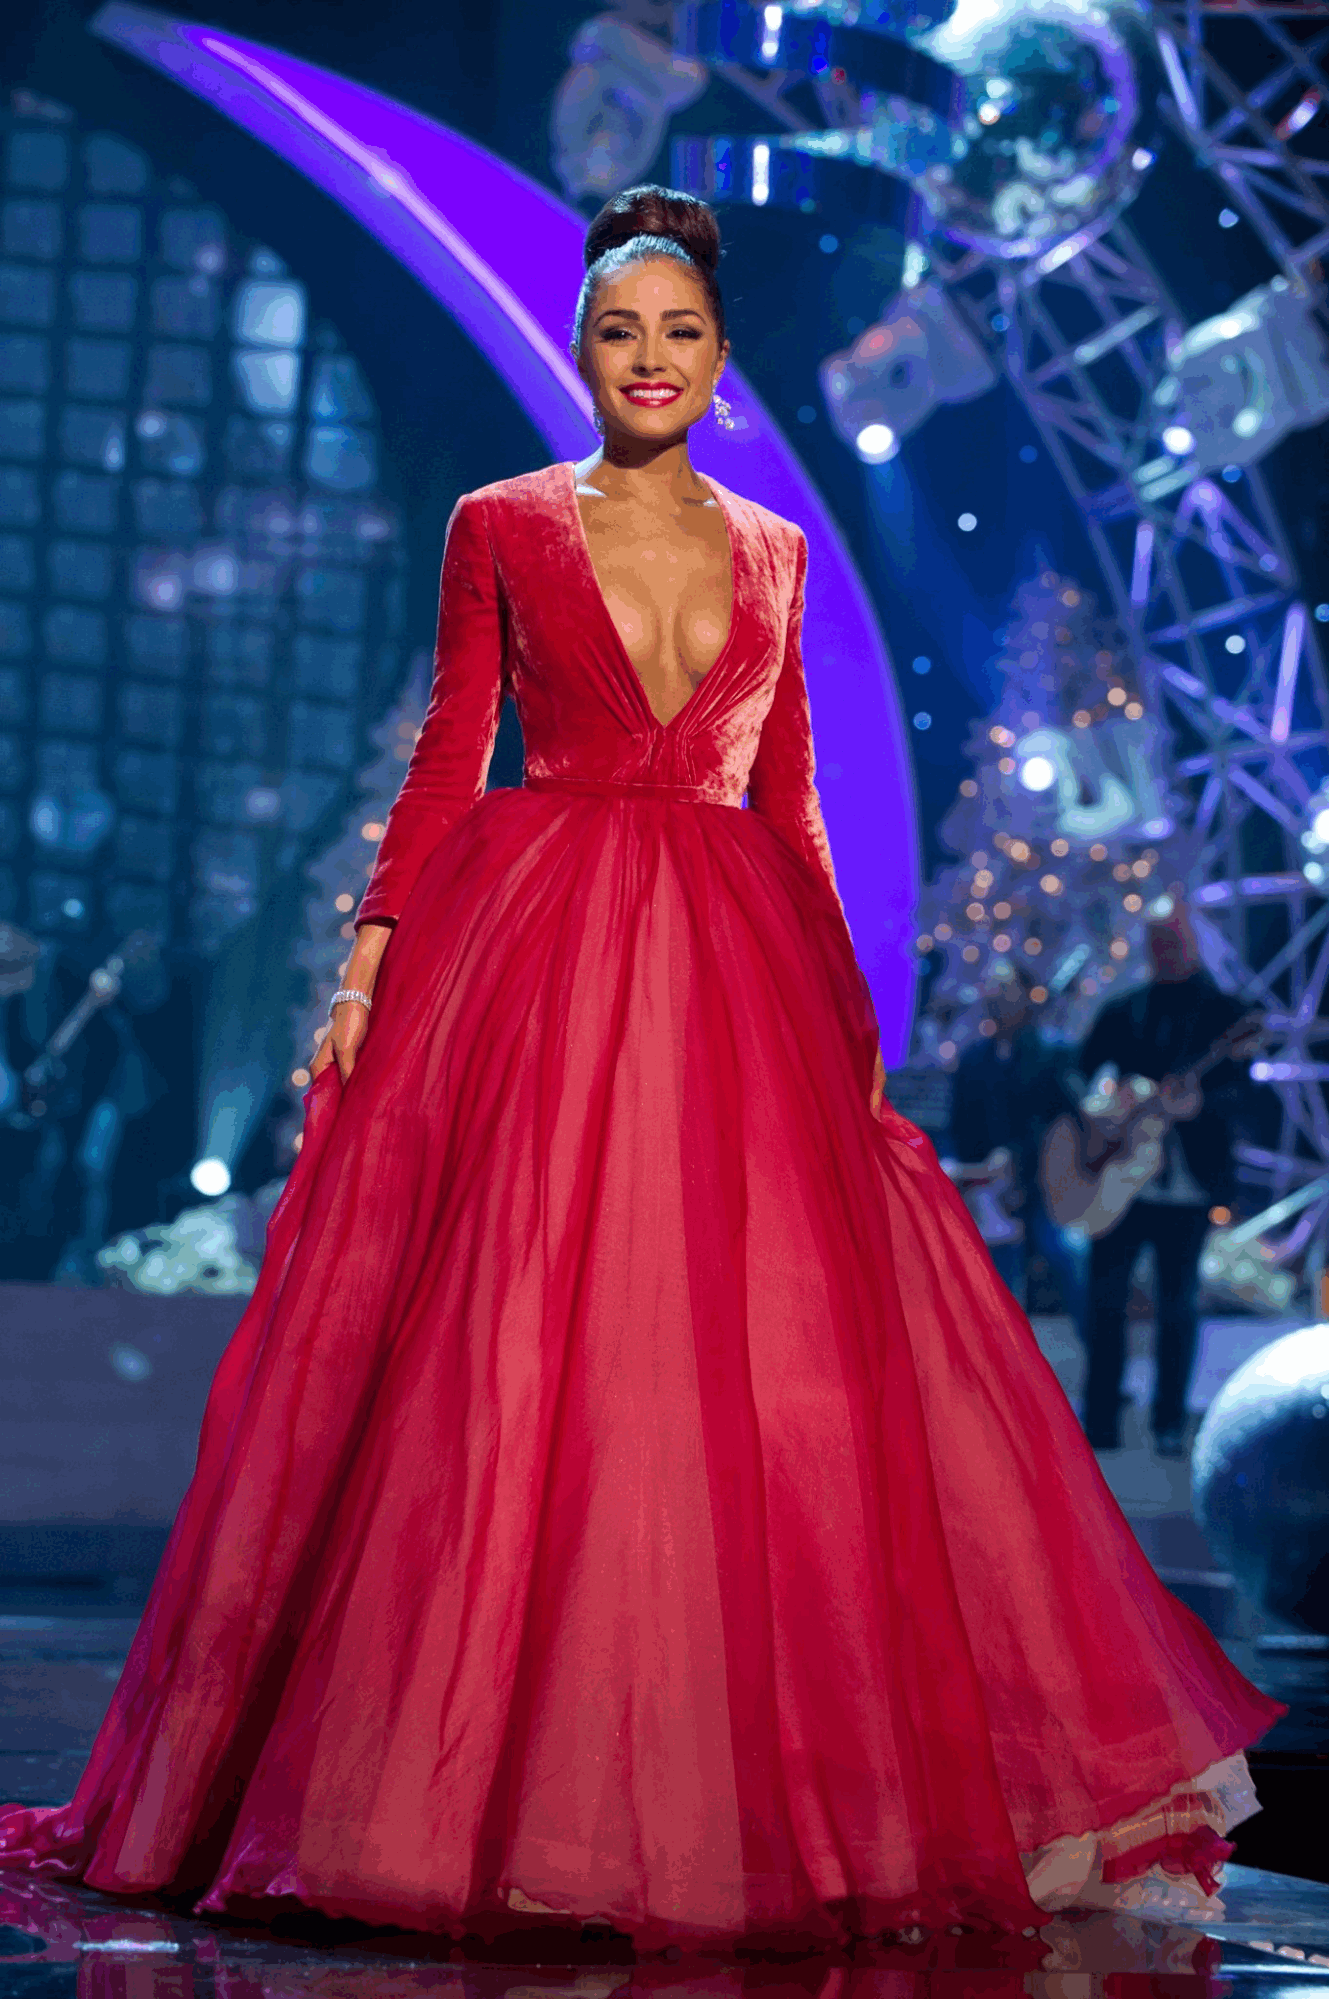 Miss Universe evening gowns - Olivia Culpo